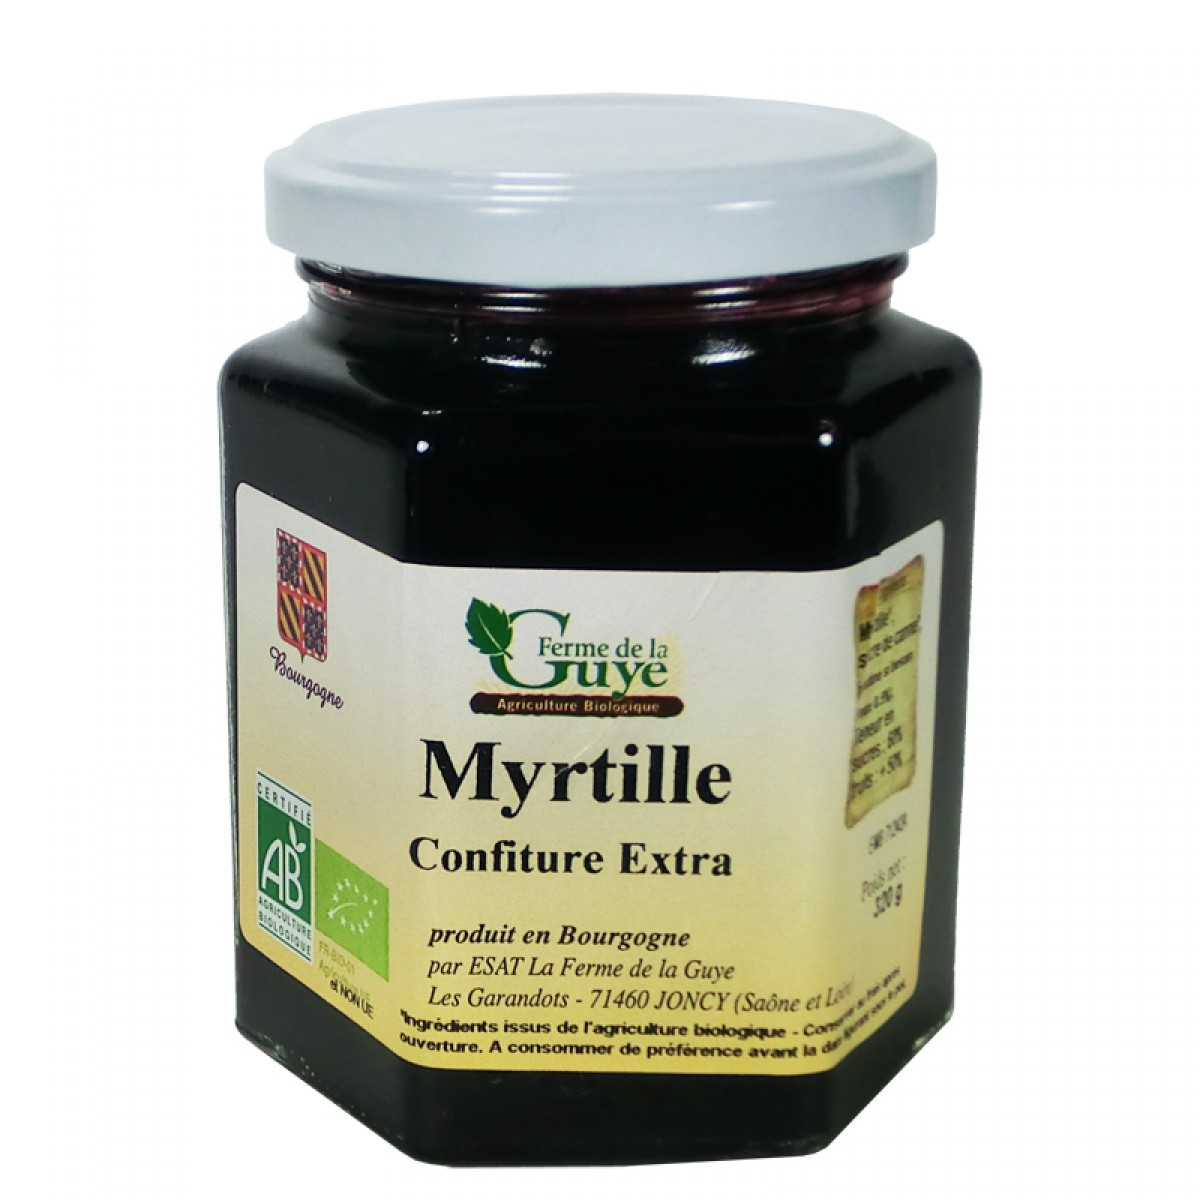 confiture myrtille 320g bio ferme de guye saveurs de bourgogne vente de produits du terroir. Black Bedroom Furniture Sets. Home Design Ideas